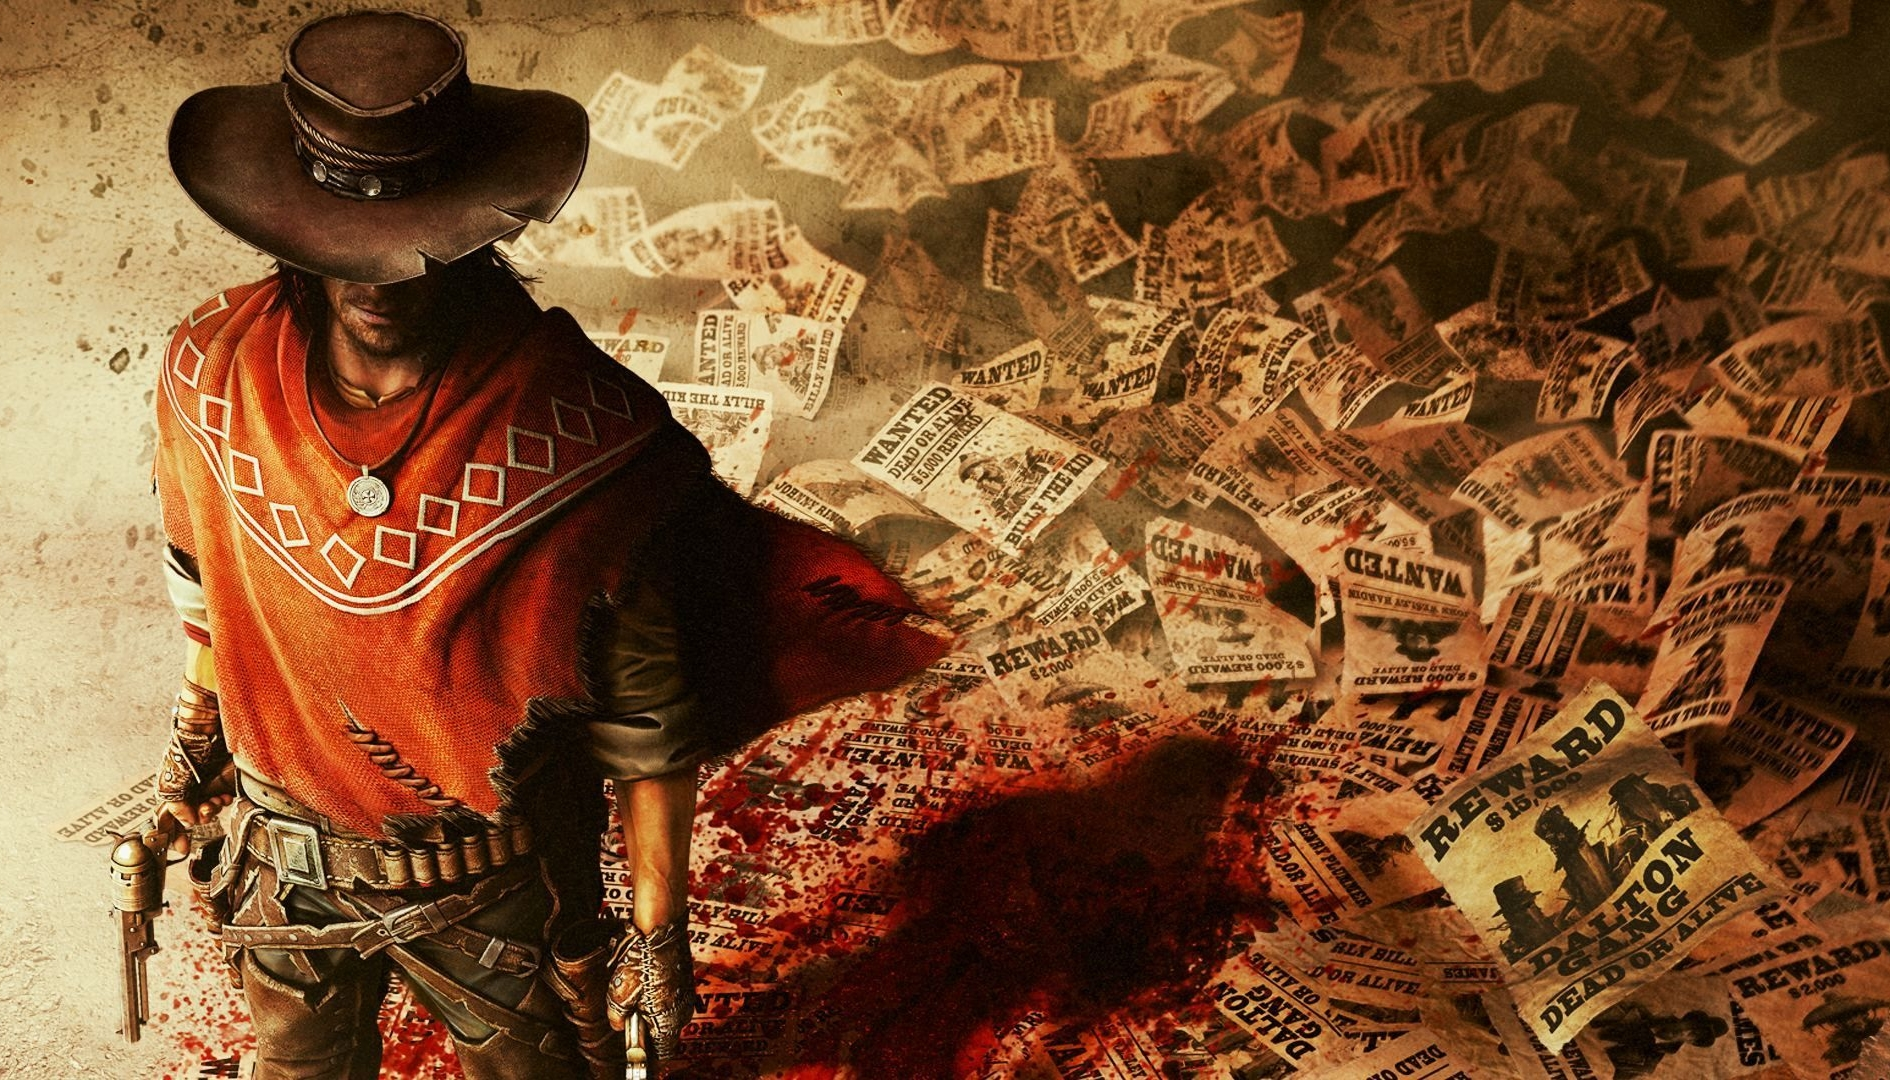 Call of Juarez: Gunslinger, annunciata la versione Nintendo Switch